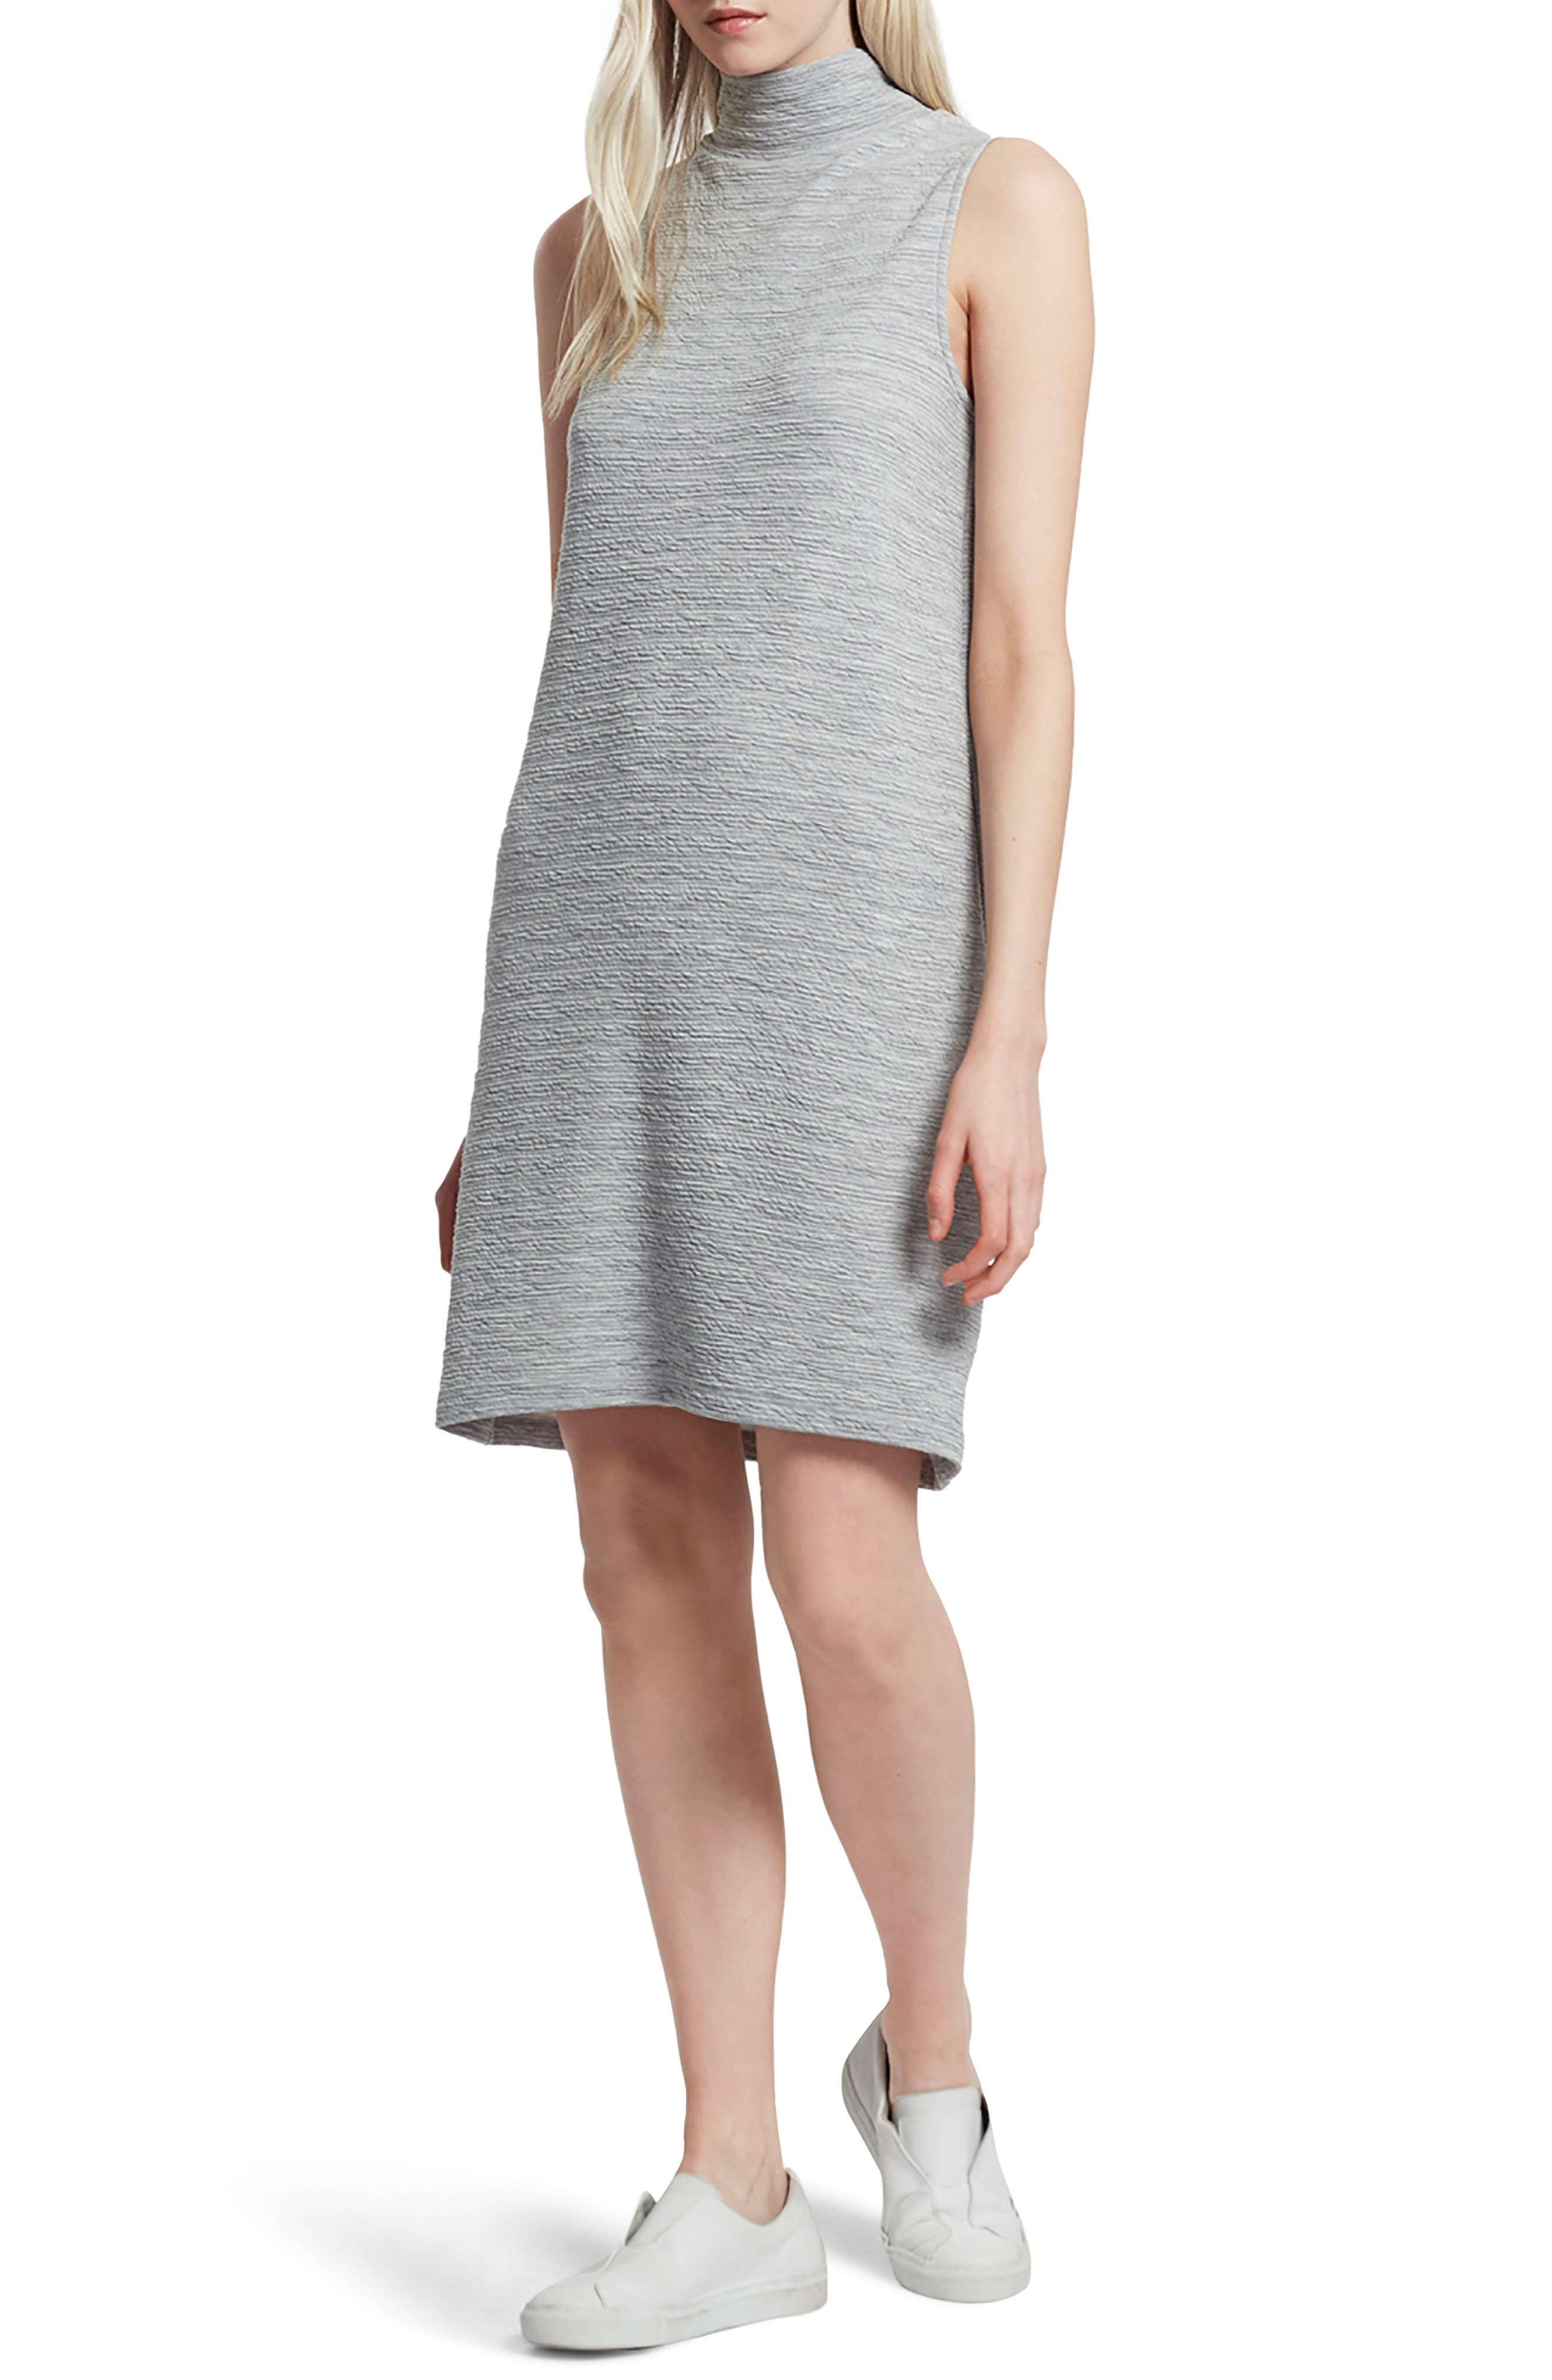 Sudan Mock Neck Dress,                         Main,                         color, Mid Grey